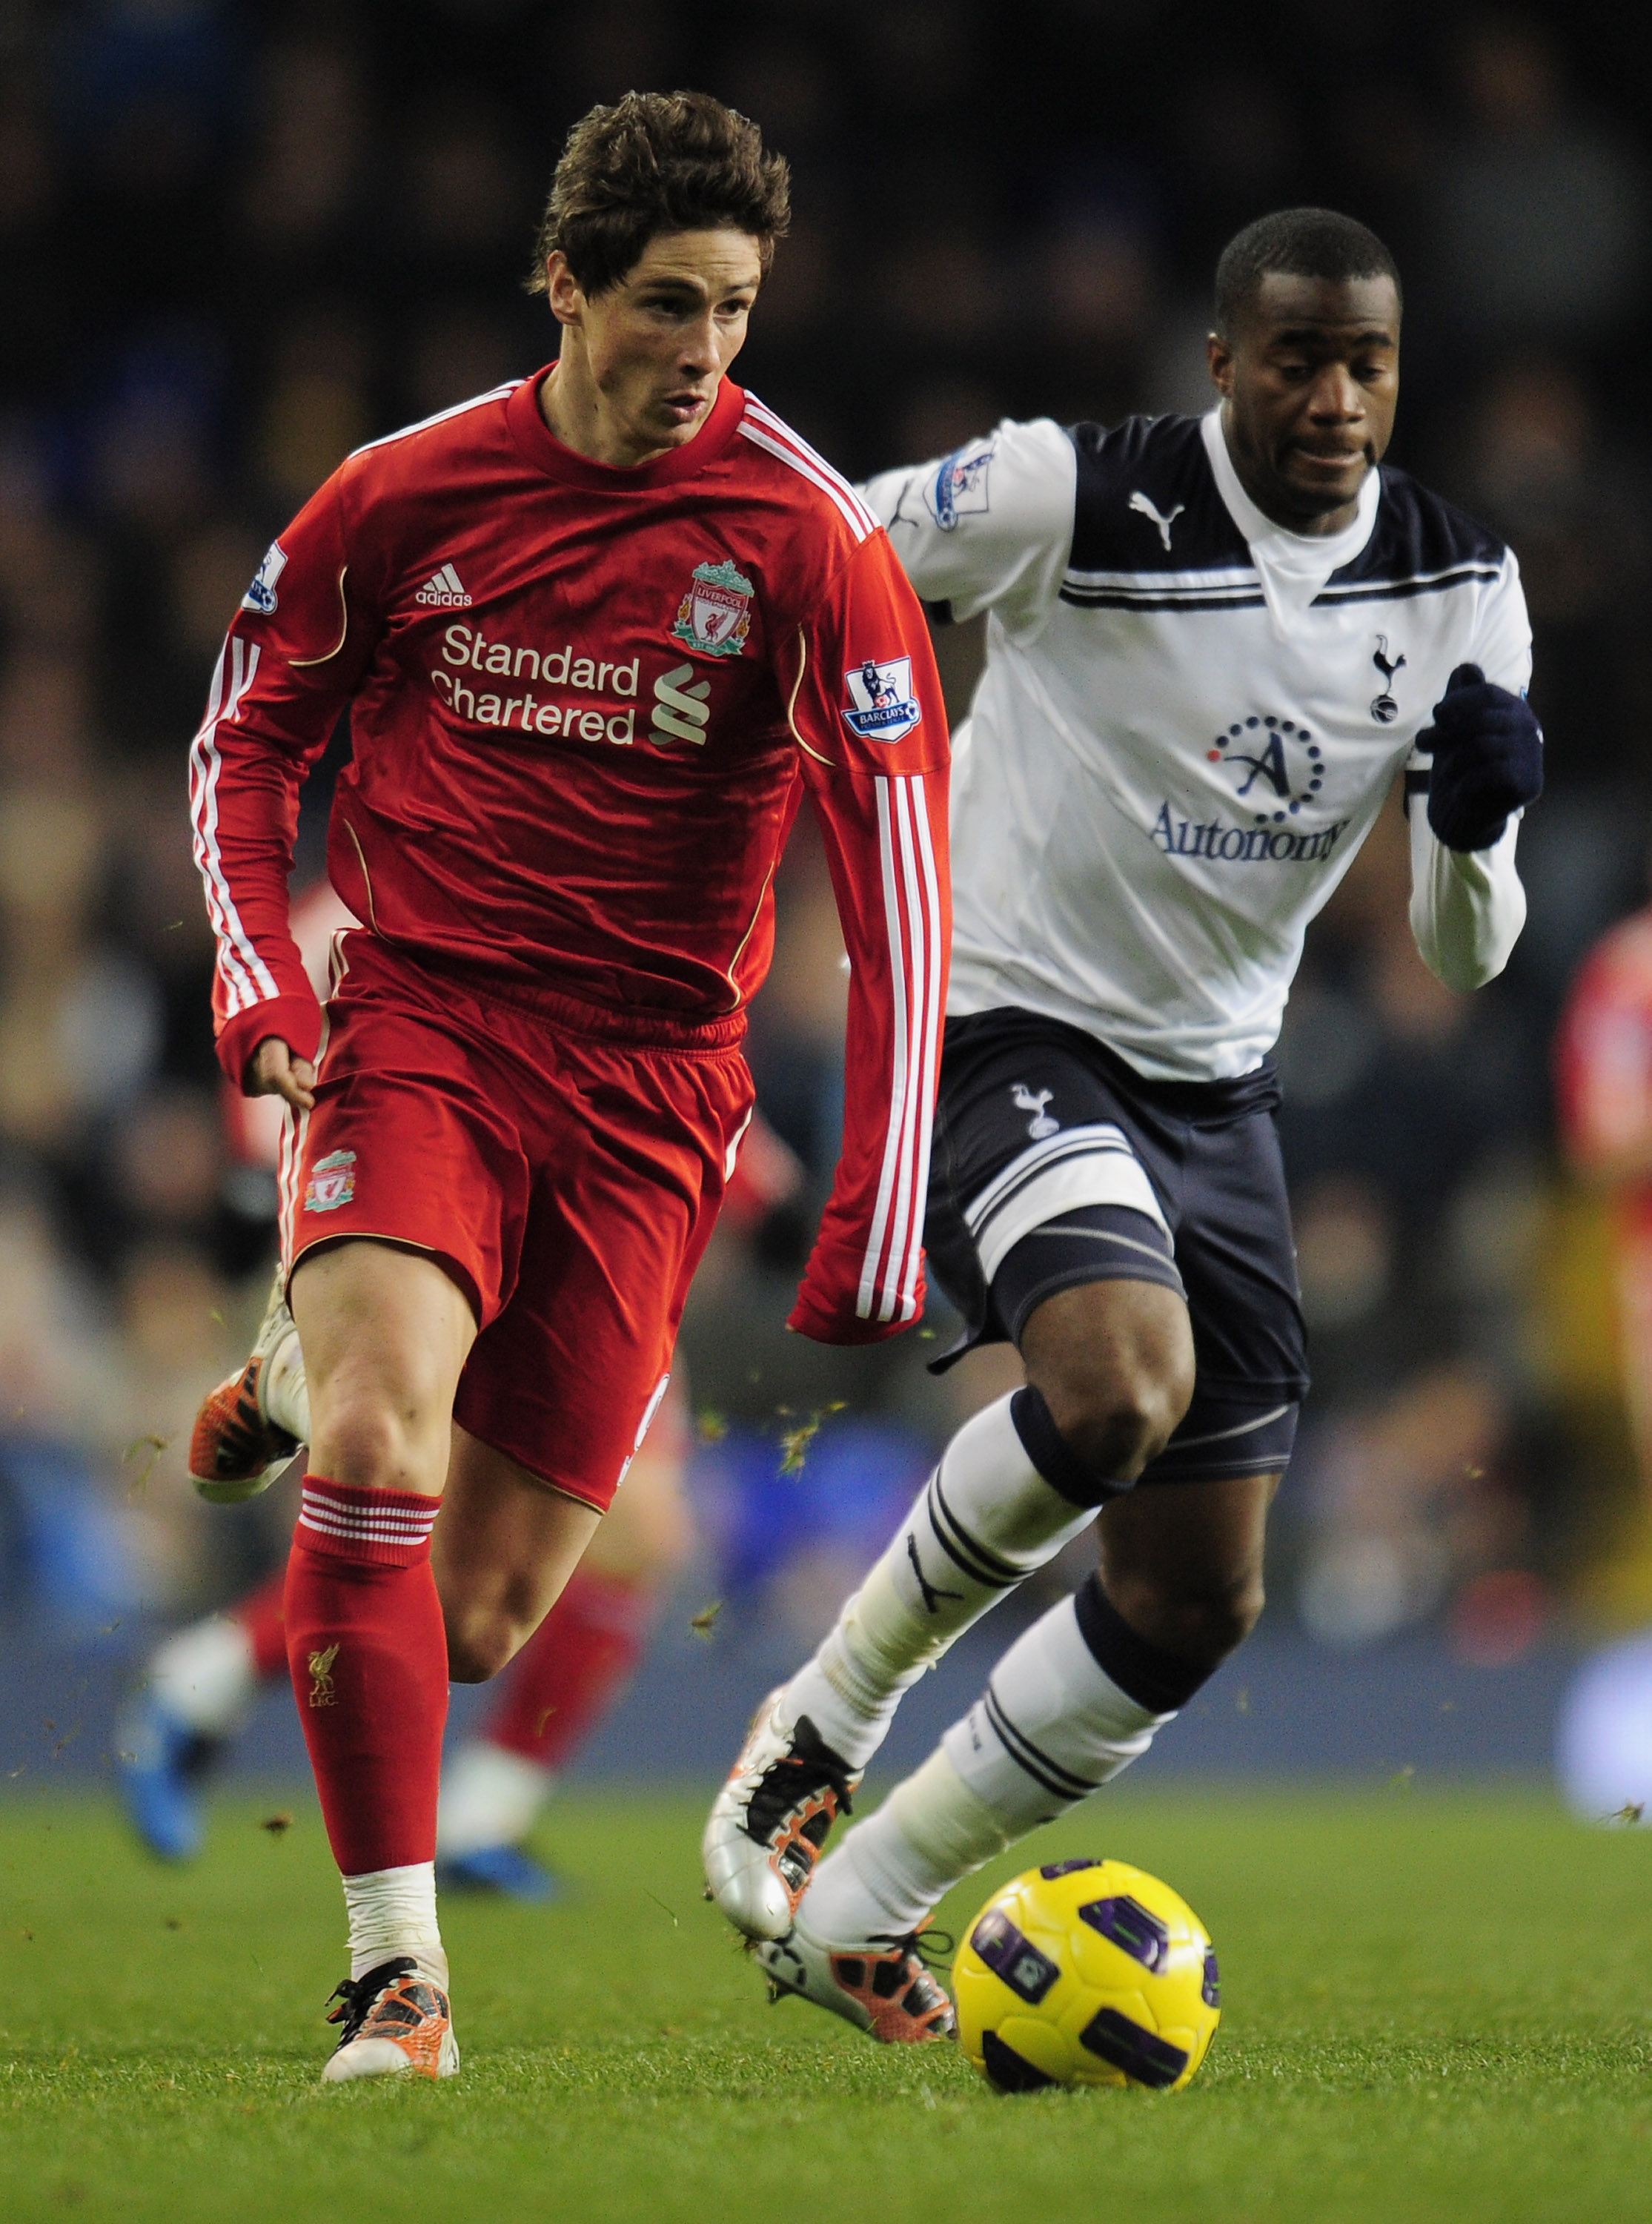 LONDON, ENGLAND - NOVEMBER 28:  Fernando Torres of Liverpool runs with the ball as he is closed down by Sebastien Bassong of Tottenham Hotspur during the Barclays Premier League match between Tottenham Hotspur and Liverpool at White Hart Lane on November